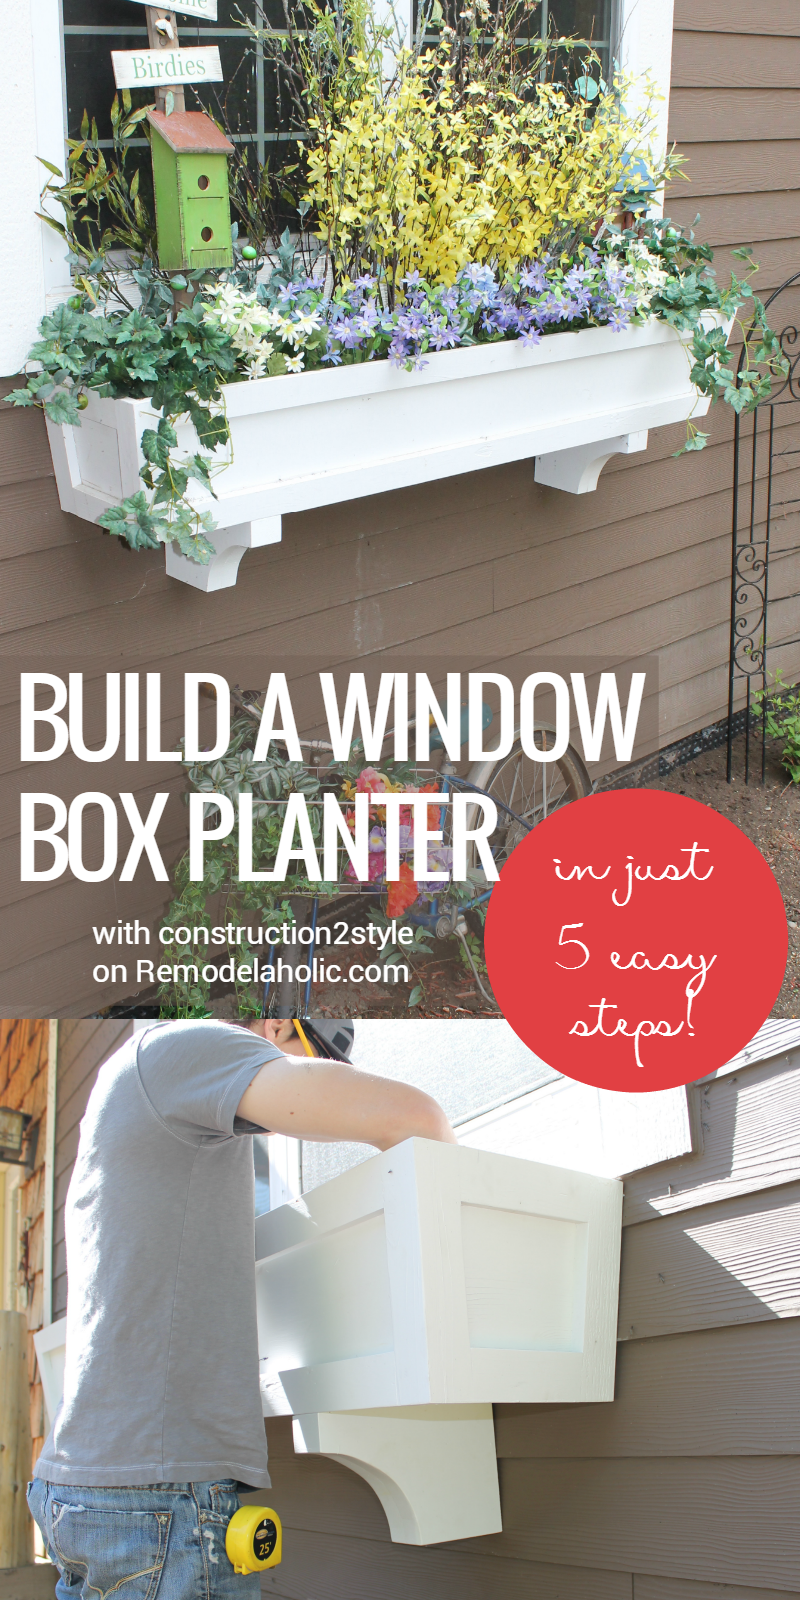 Remodelaholic   How to Build a Window Box Planter in 5 Steps on indoor window boxes for building designs, window box planting designs, diy window box designs, window wall designs, window trellis designs, window home designs, window sills designs, cedar wall designs, window greenhouse designs, window box plans, window kitchen designs, window garden designs, window pergola designs,